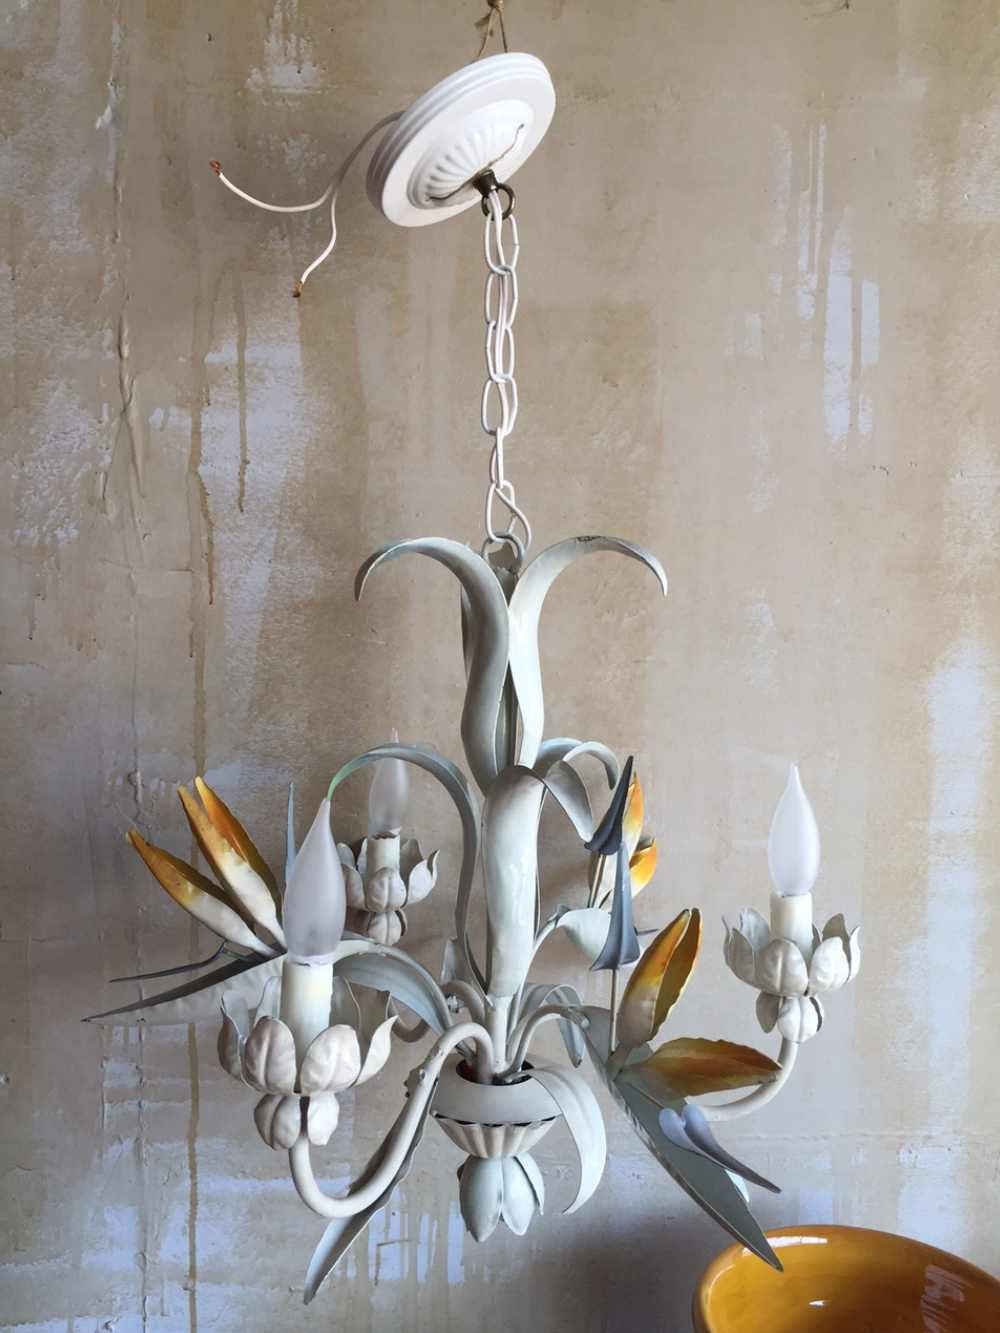 Soldvintage tole chandelier with bird of paradise vintage tole chandelier with bird of paradise mercato antiques 1 arubaitofo Image collections